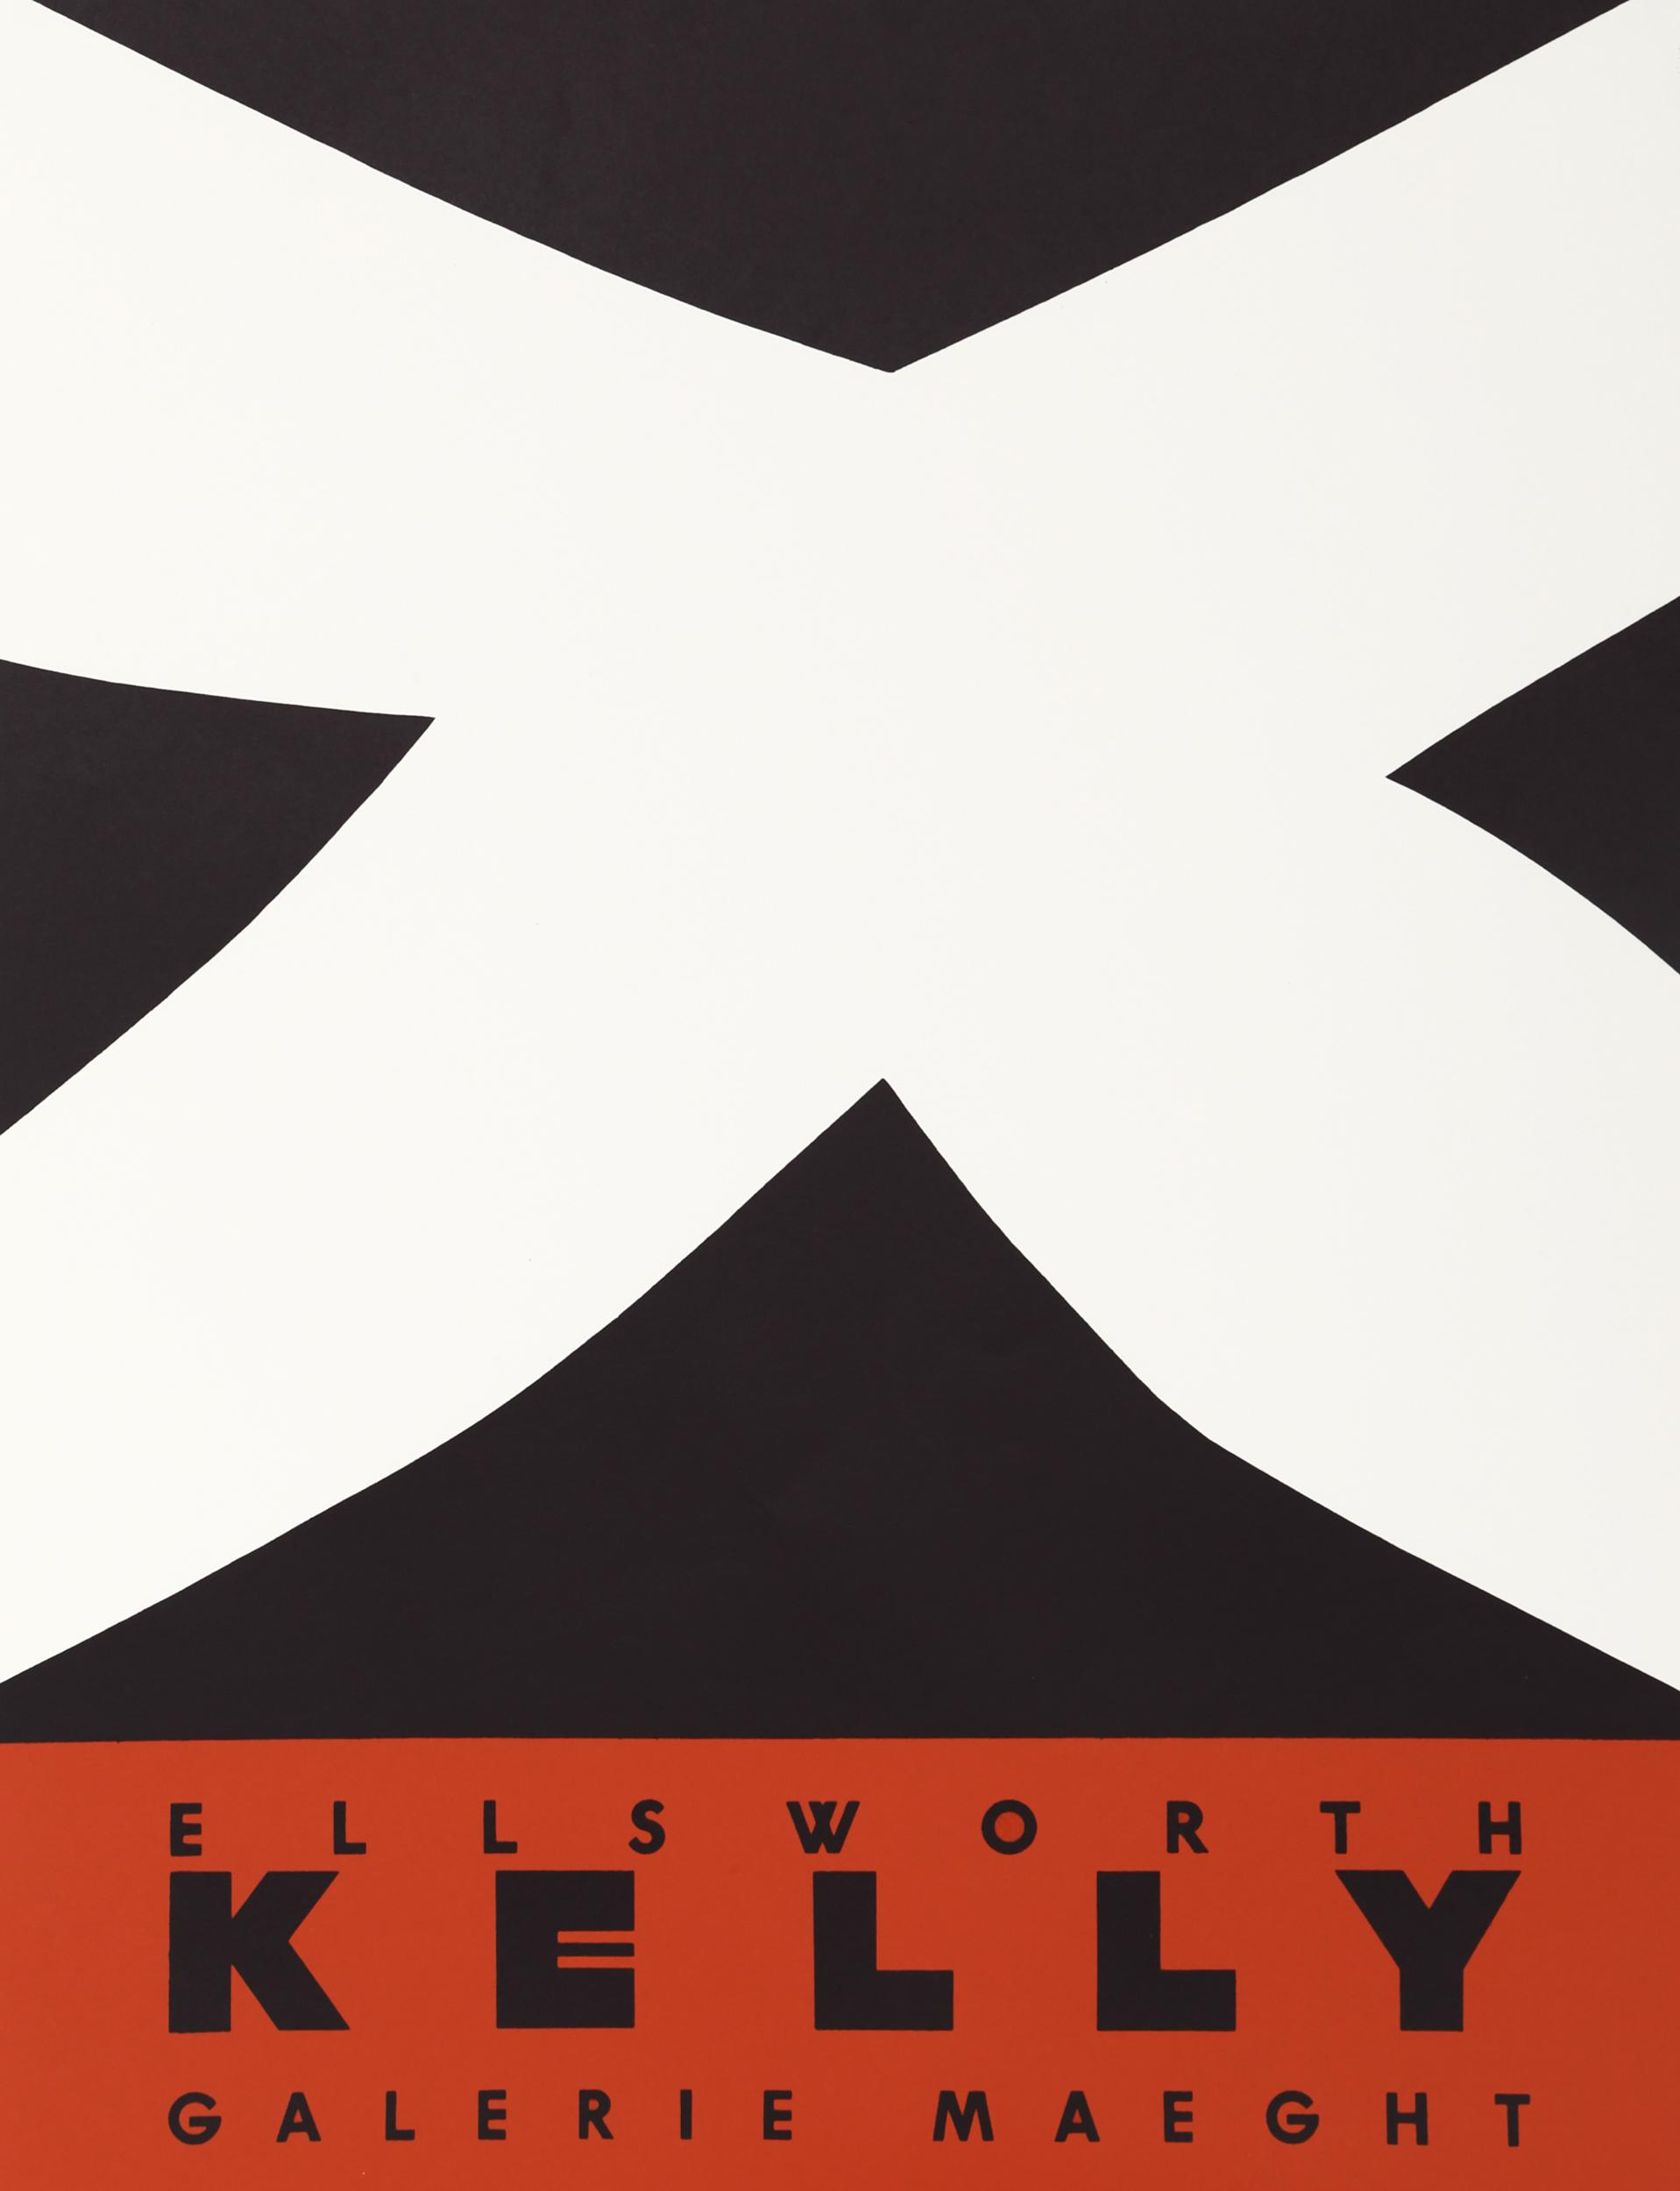 Ellsworth Kelly, Galerie Maeght, Lithograph Poster